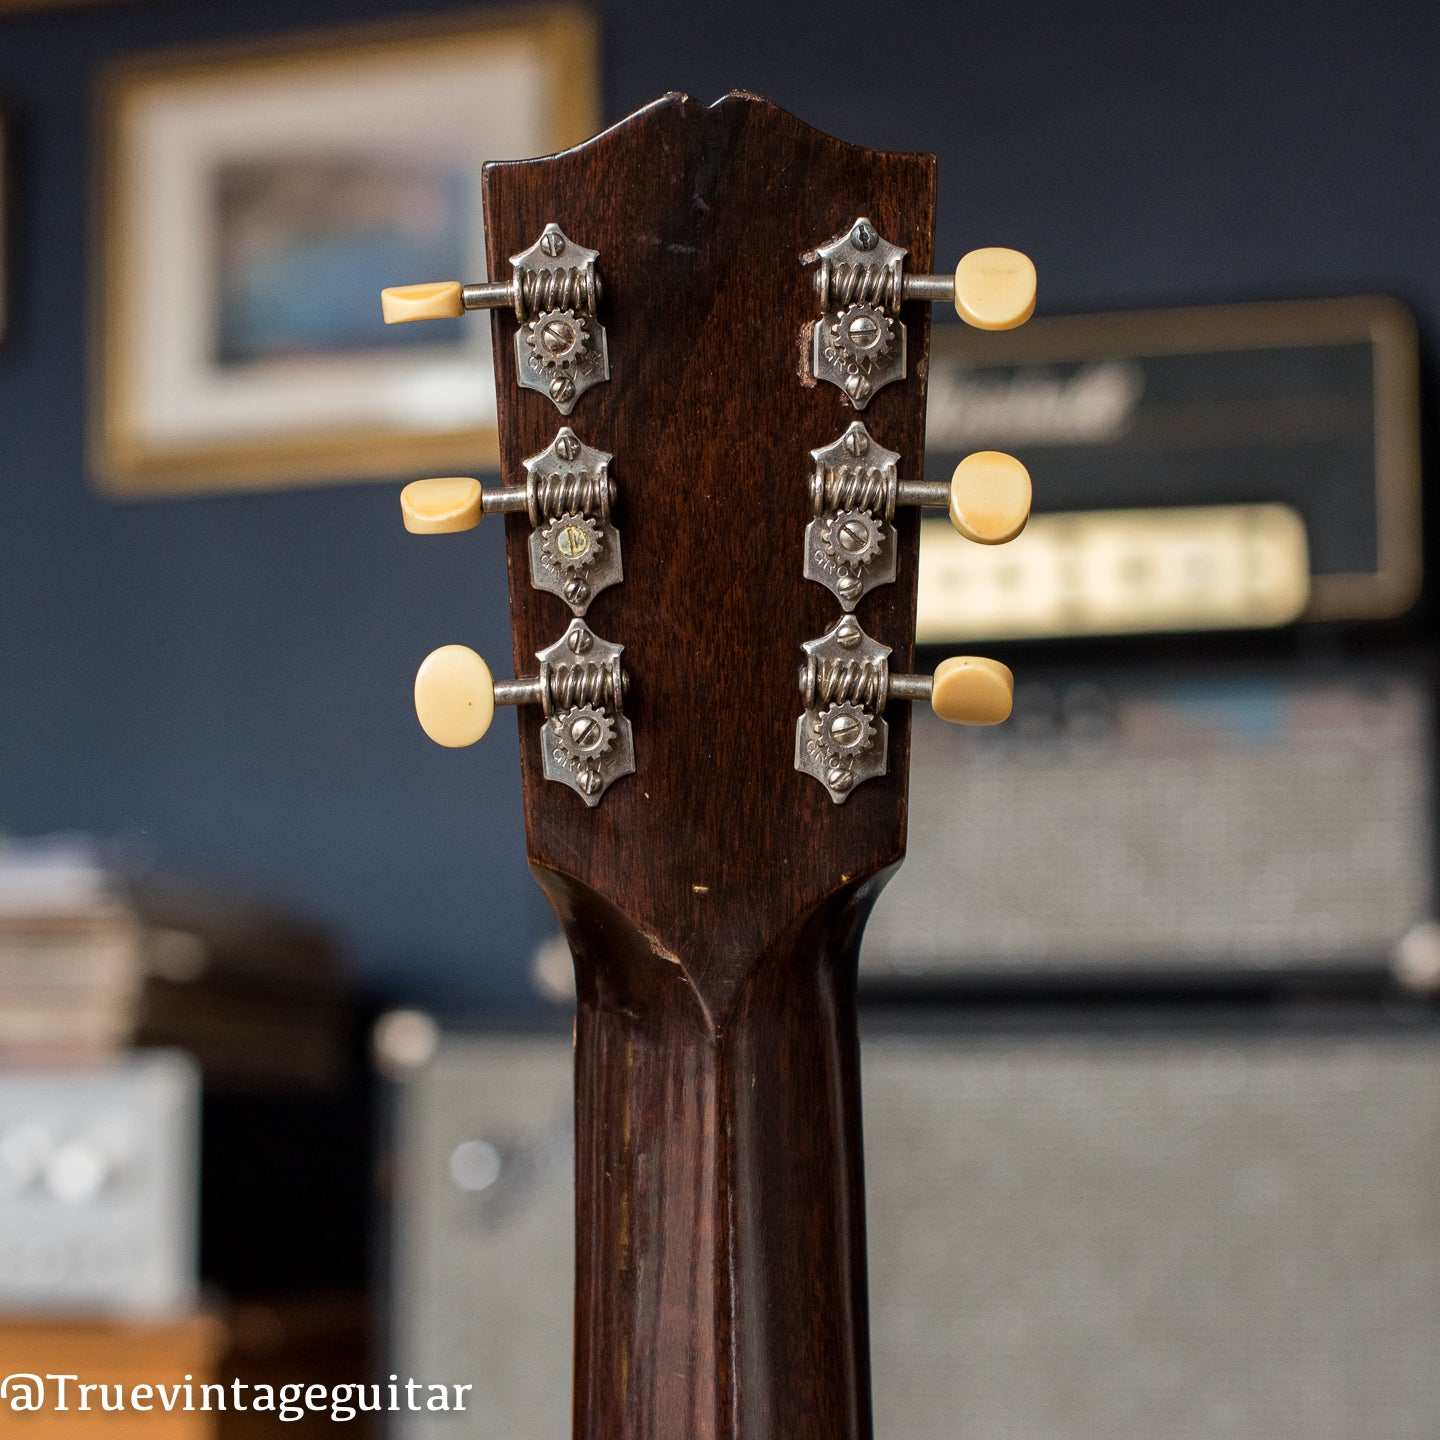 1930s Gibson acoustic guitar